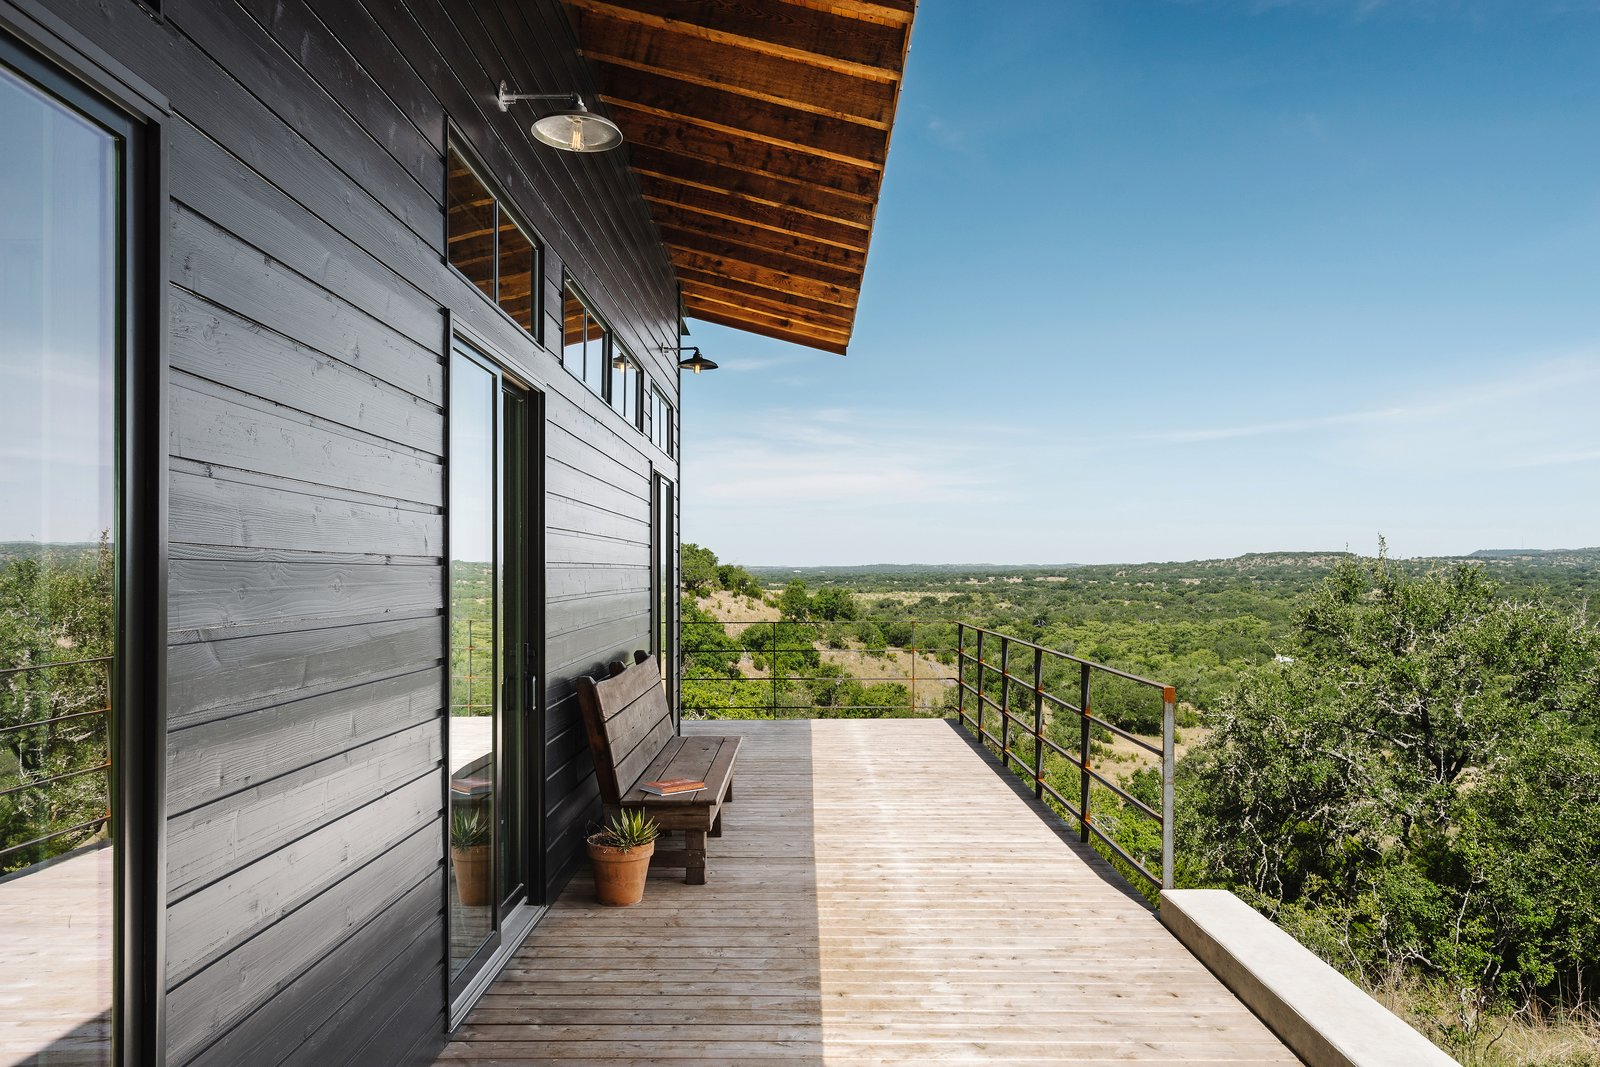 Exterior, Wood Siding Material, Gable RoofLine, House Building Type, Ranch Building Type, Metal Roof Material, and Metal Siding Material The wraparound deck boasts a view of the surroundings with shade provided by the eaves of the roof.  Best Photos from An Old Texas Ranch Becomes a Spectacular Family Haven